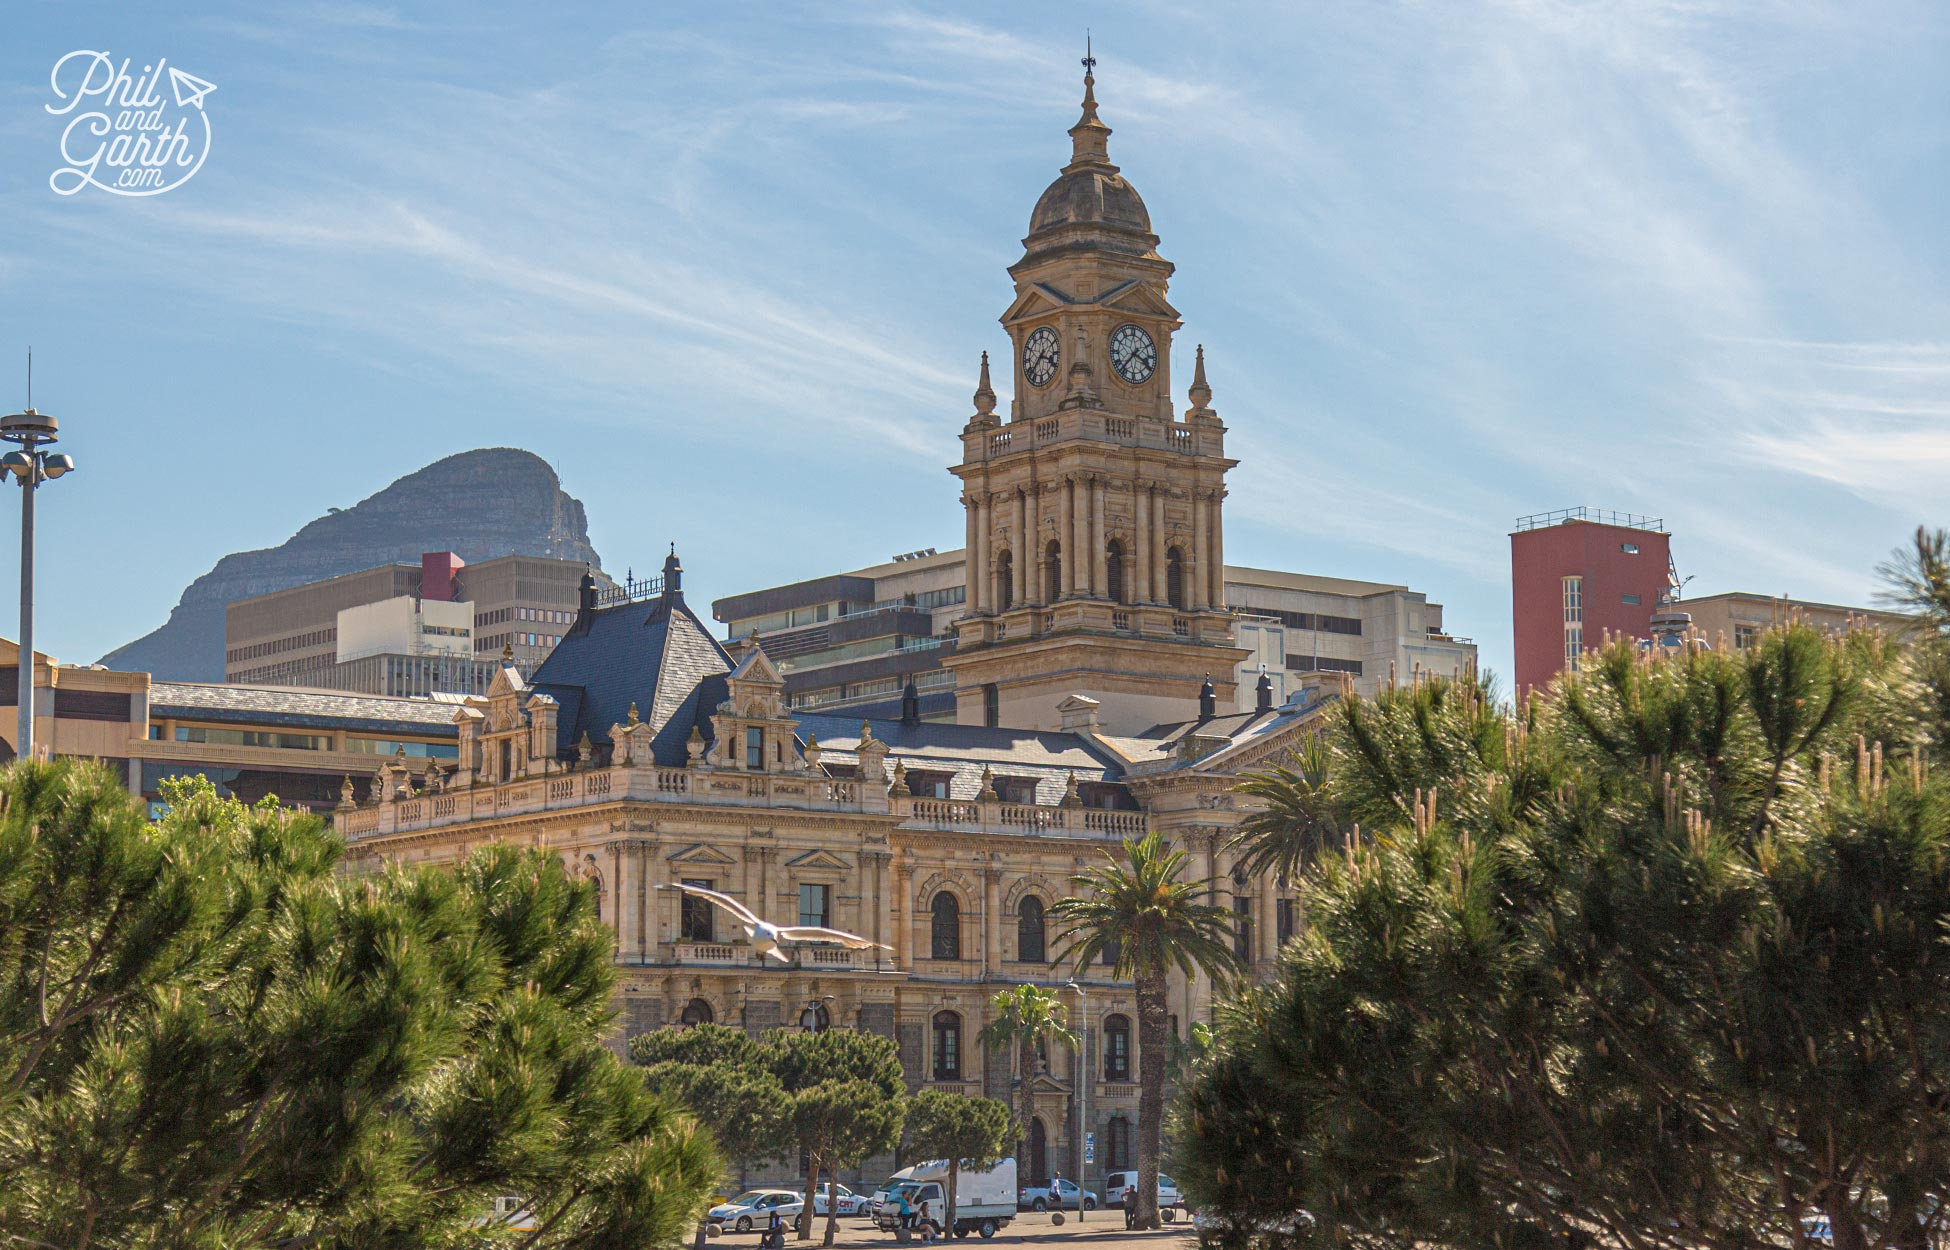 The Cape Town City Hall